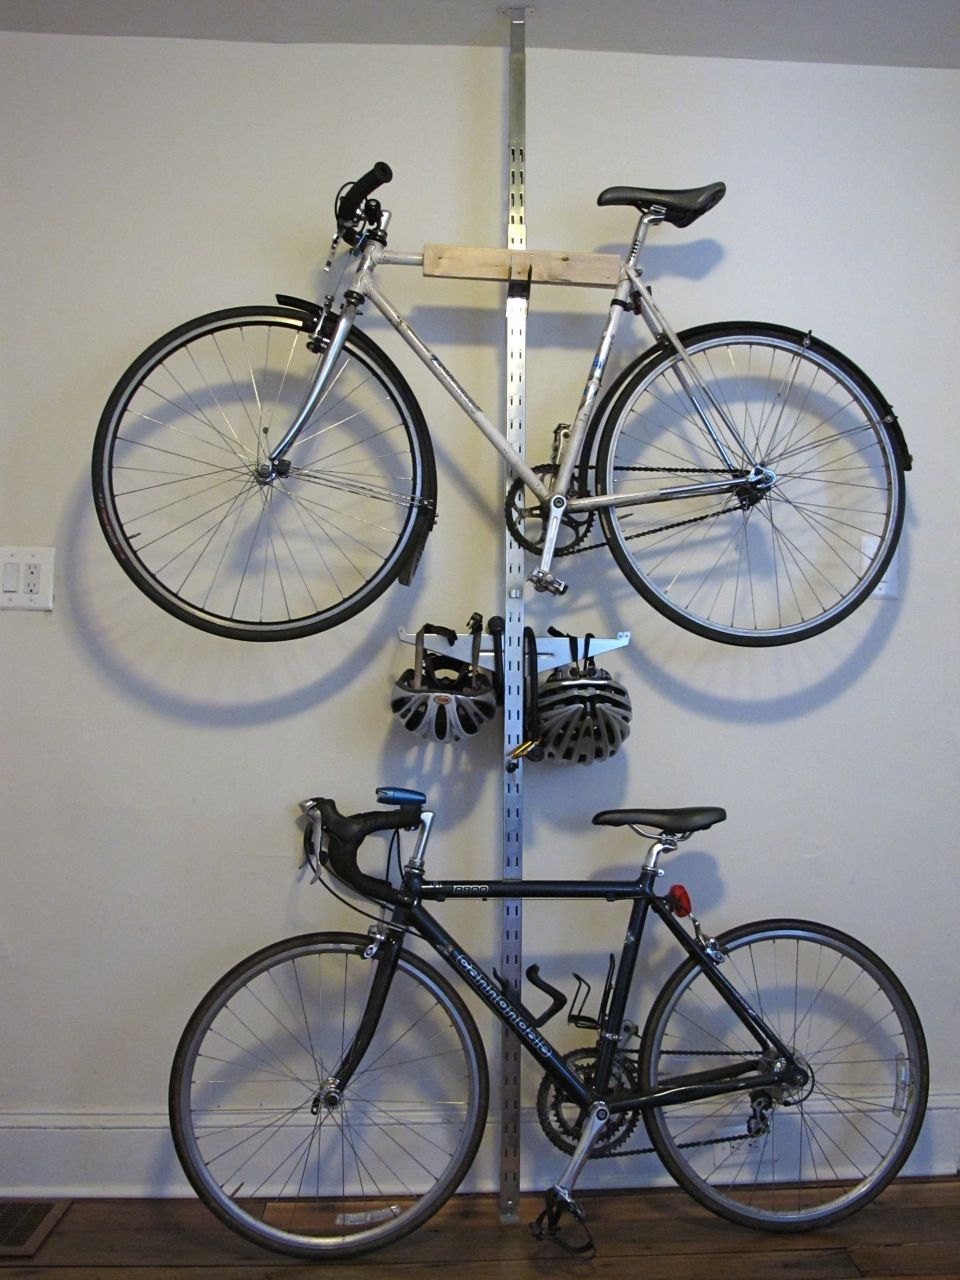 Tidy Garage Bike Rack Installation Ikea Hack Diy Bike Storage Apartment Living Bike Storage